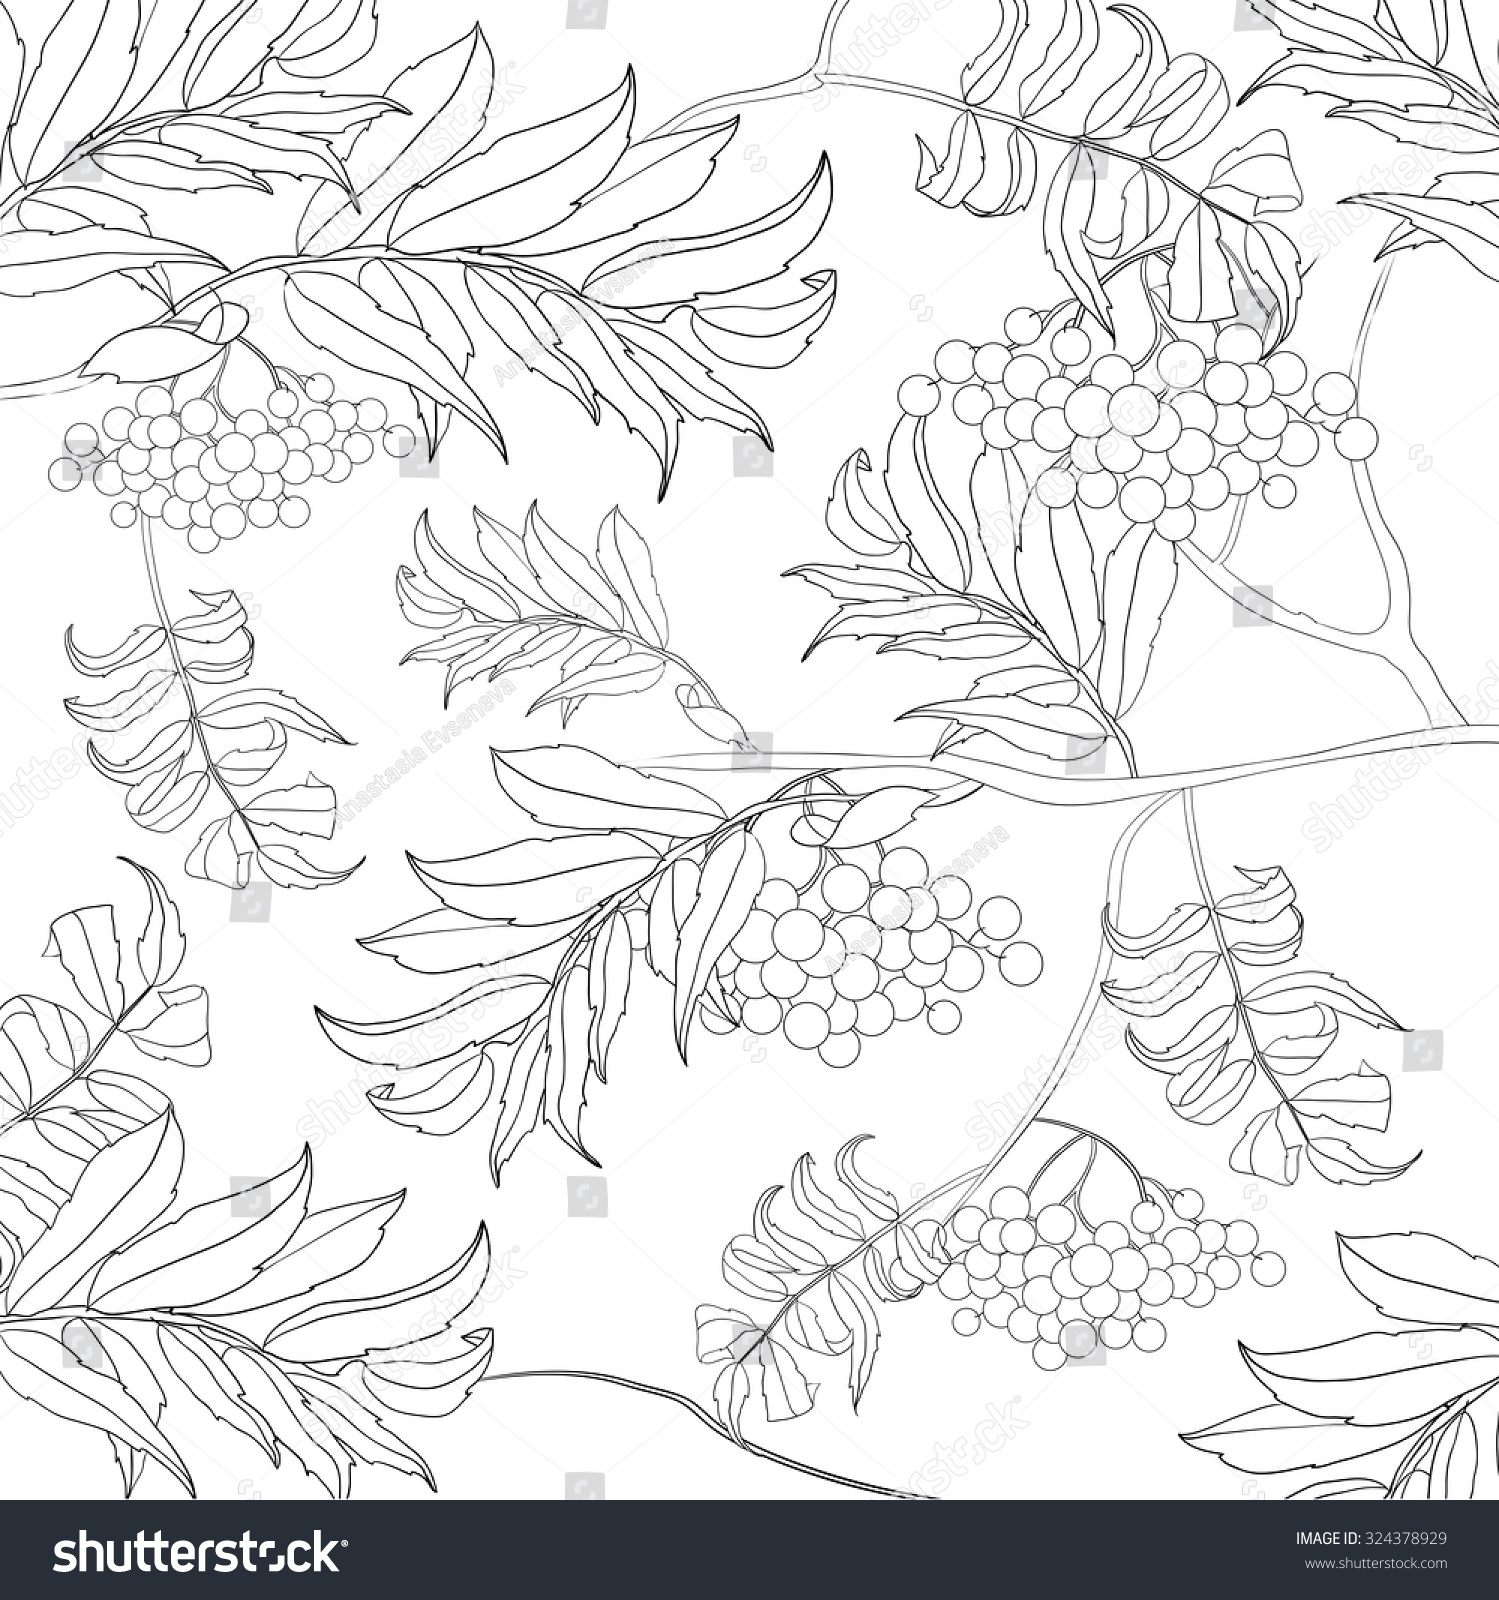 Art And Color Therapy An Anti Stress Coloring Book Birds In The Rowan Page